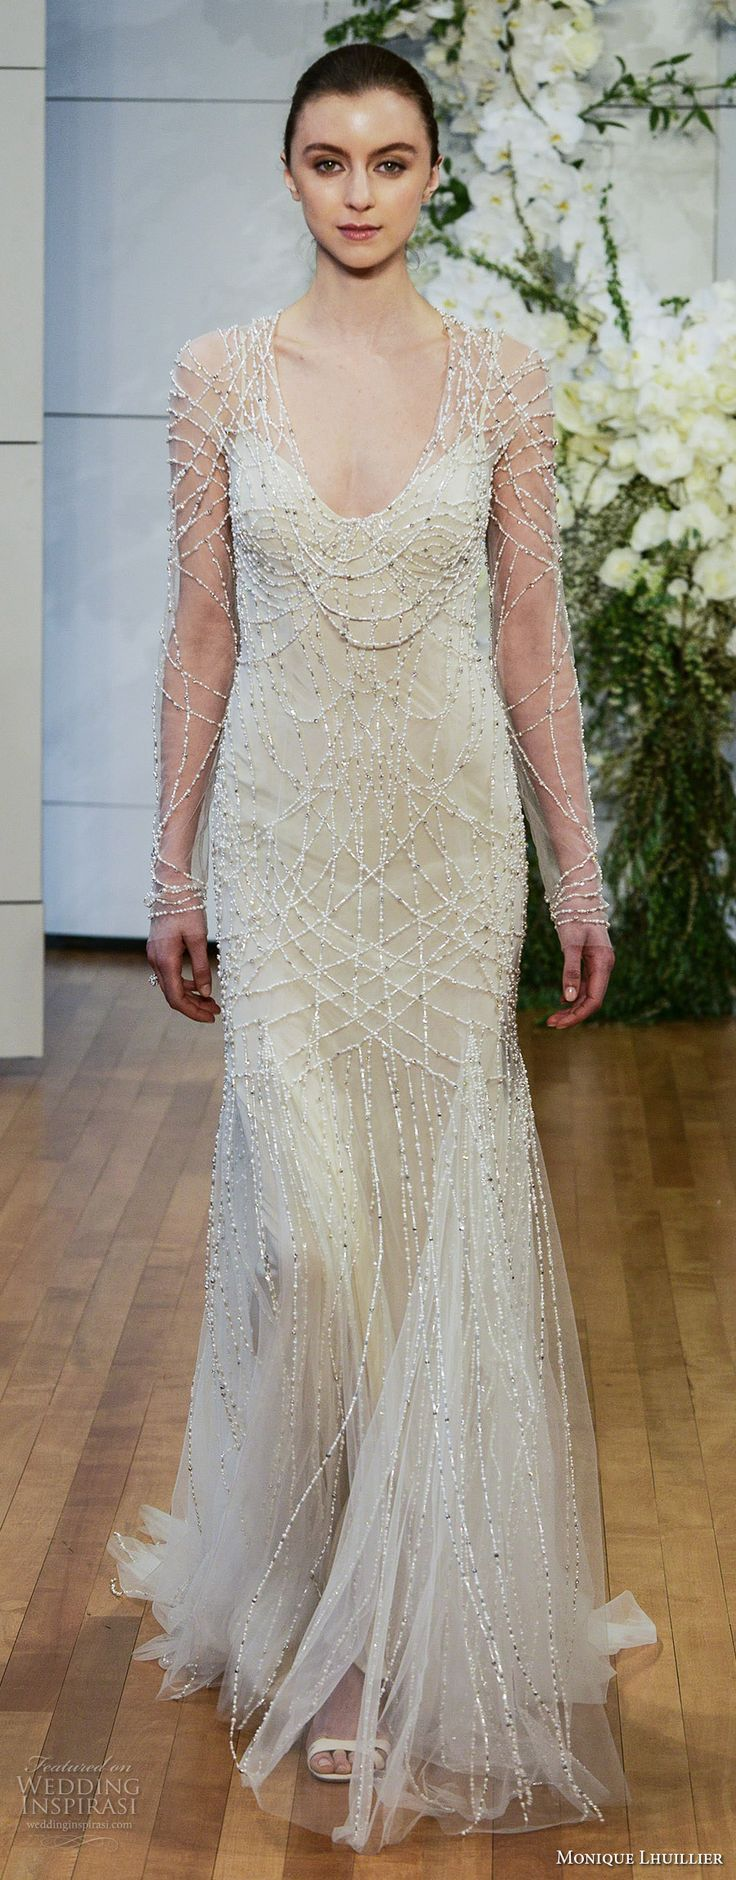 monique lhuillier spring 2018 bridal long sleeves spagetti strap scoop neckline full embellishment beaded elegant glamorous column wedding dress covered beaded back chapel train (samathan) mv -- Monique Lhuillier Spring 2018 Wedding Dresses